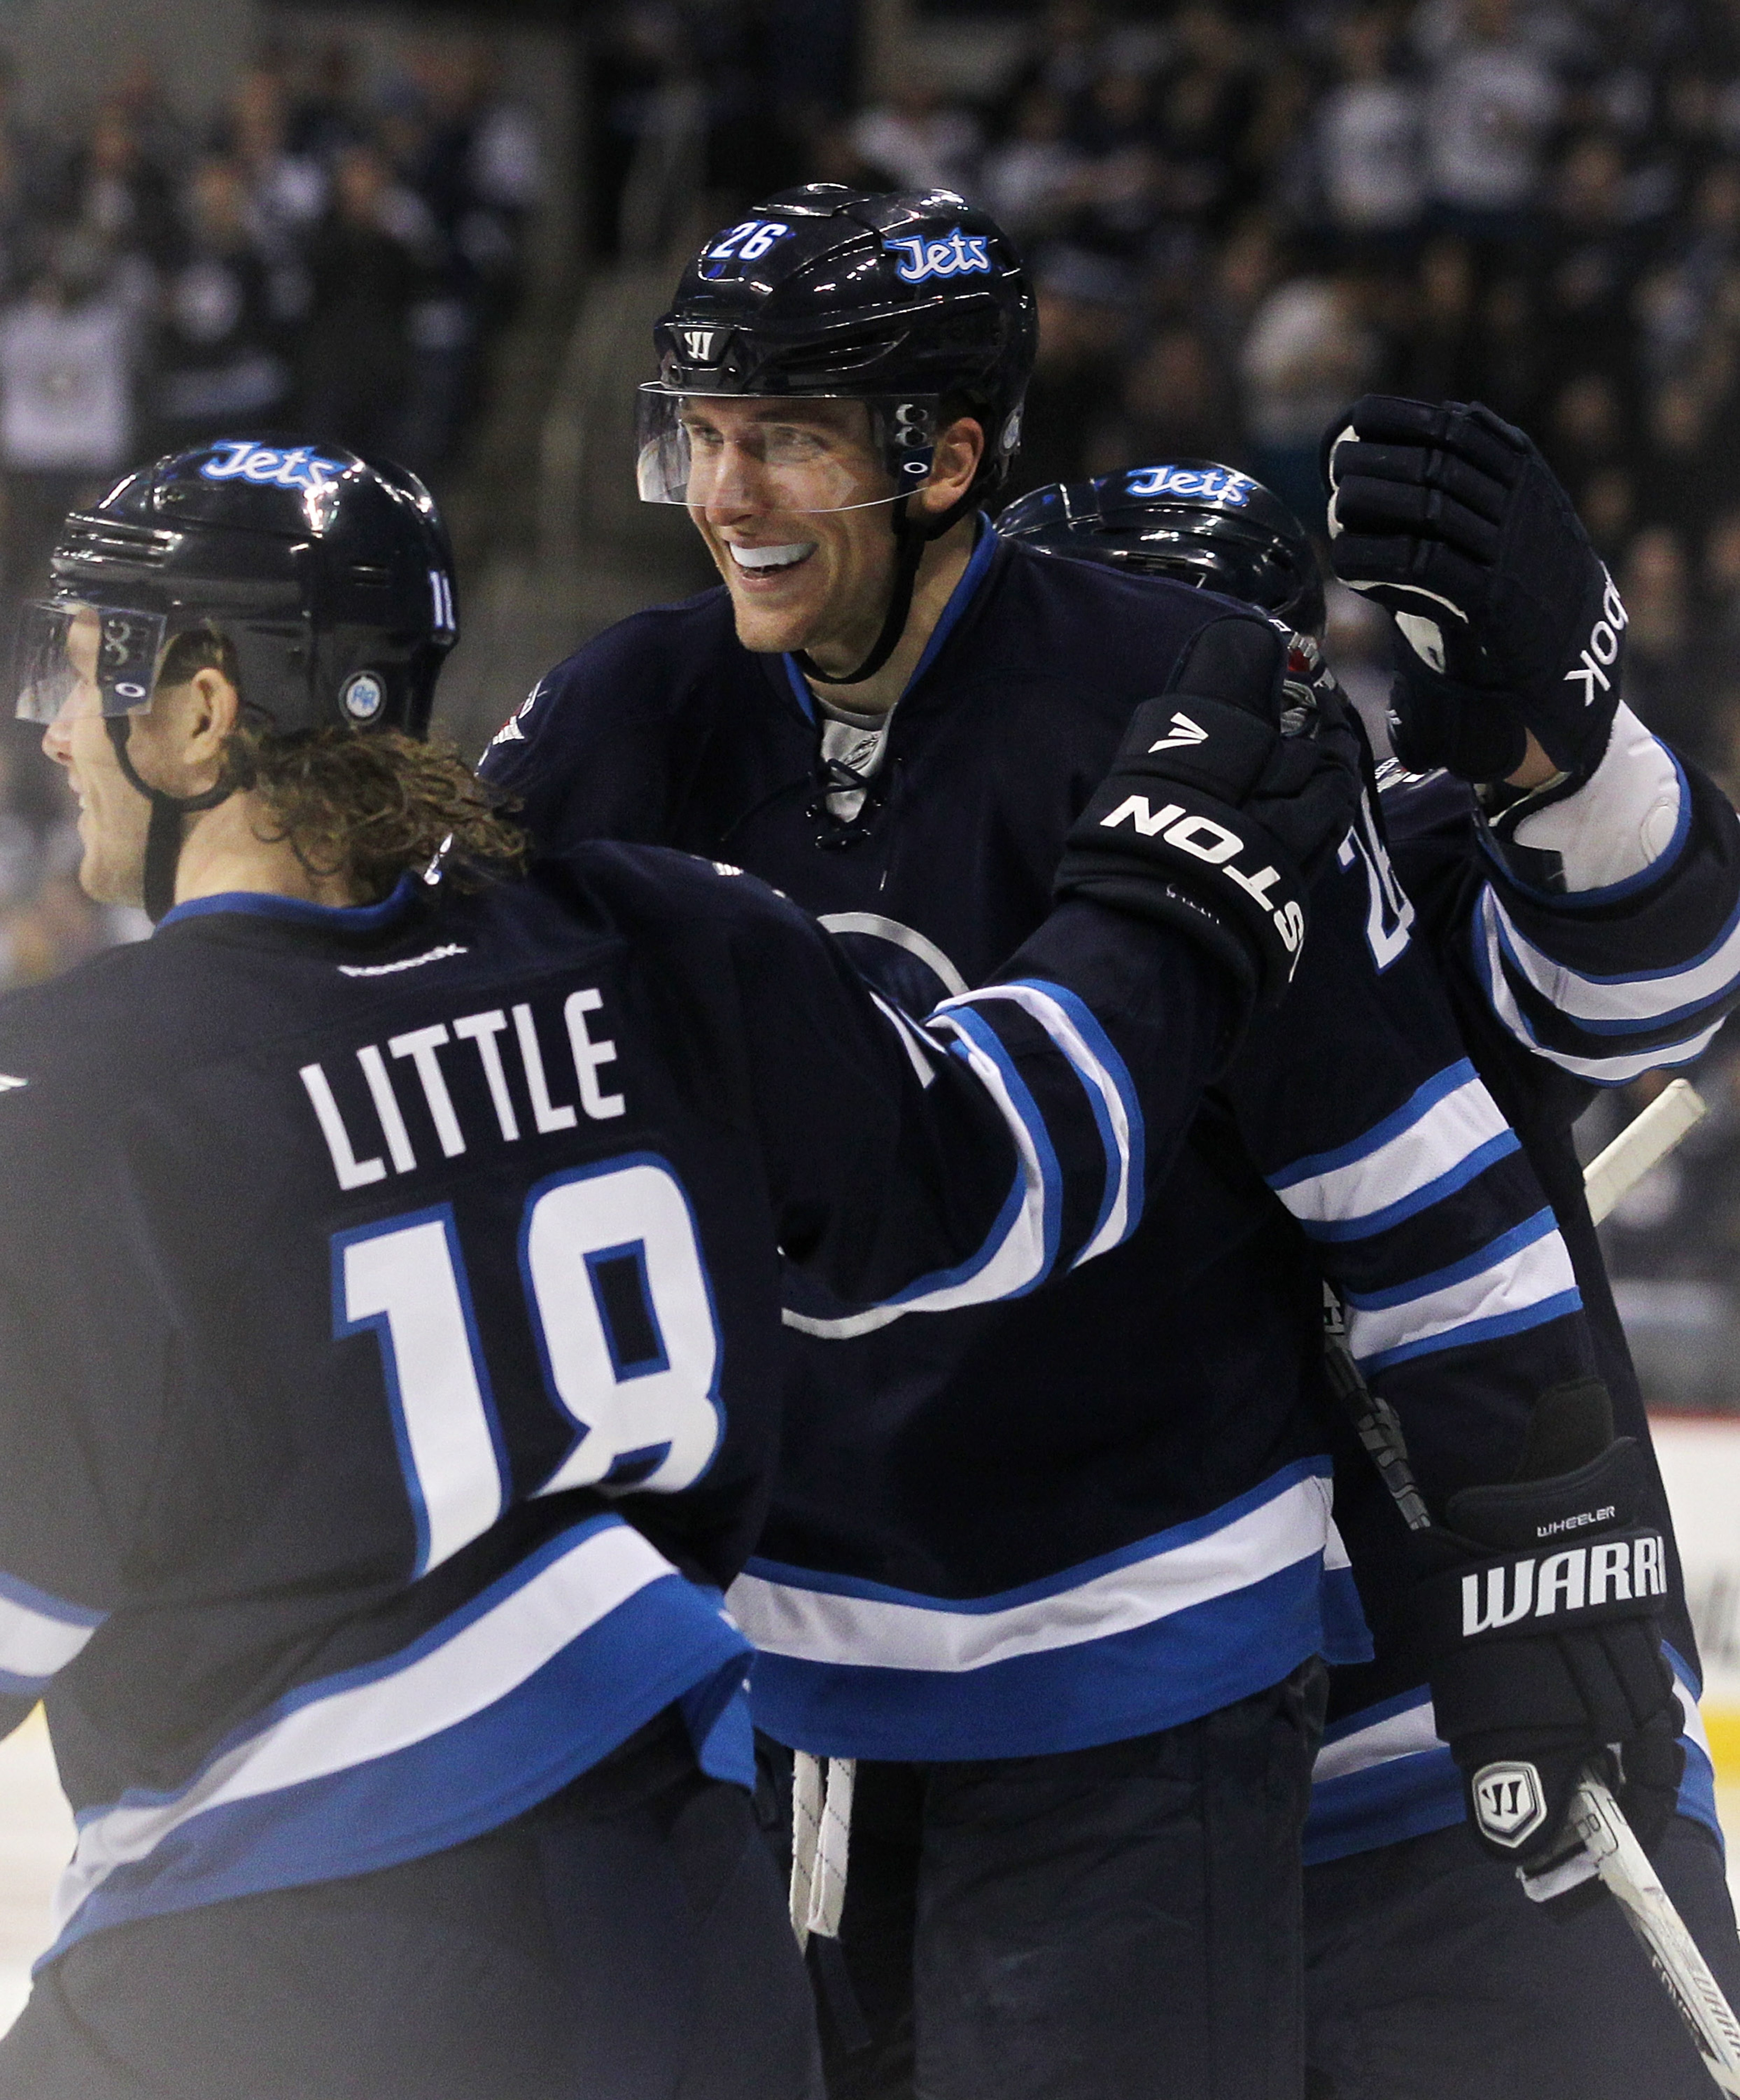 Blake Wheeler and the Jets are smiling pretty at the top of the Southeast standings.